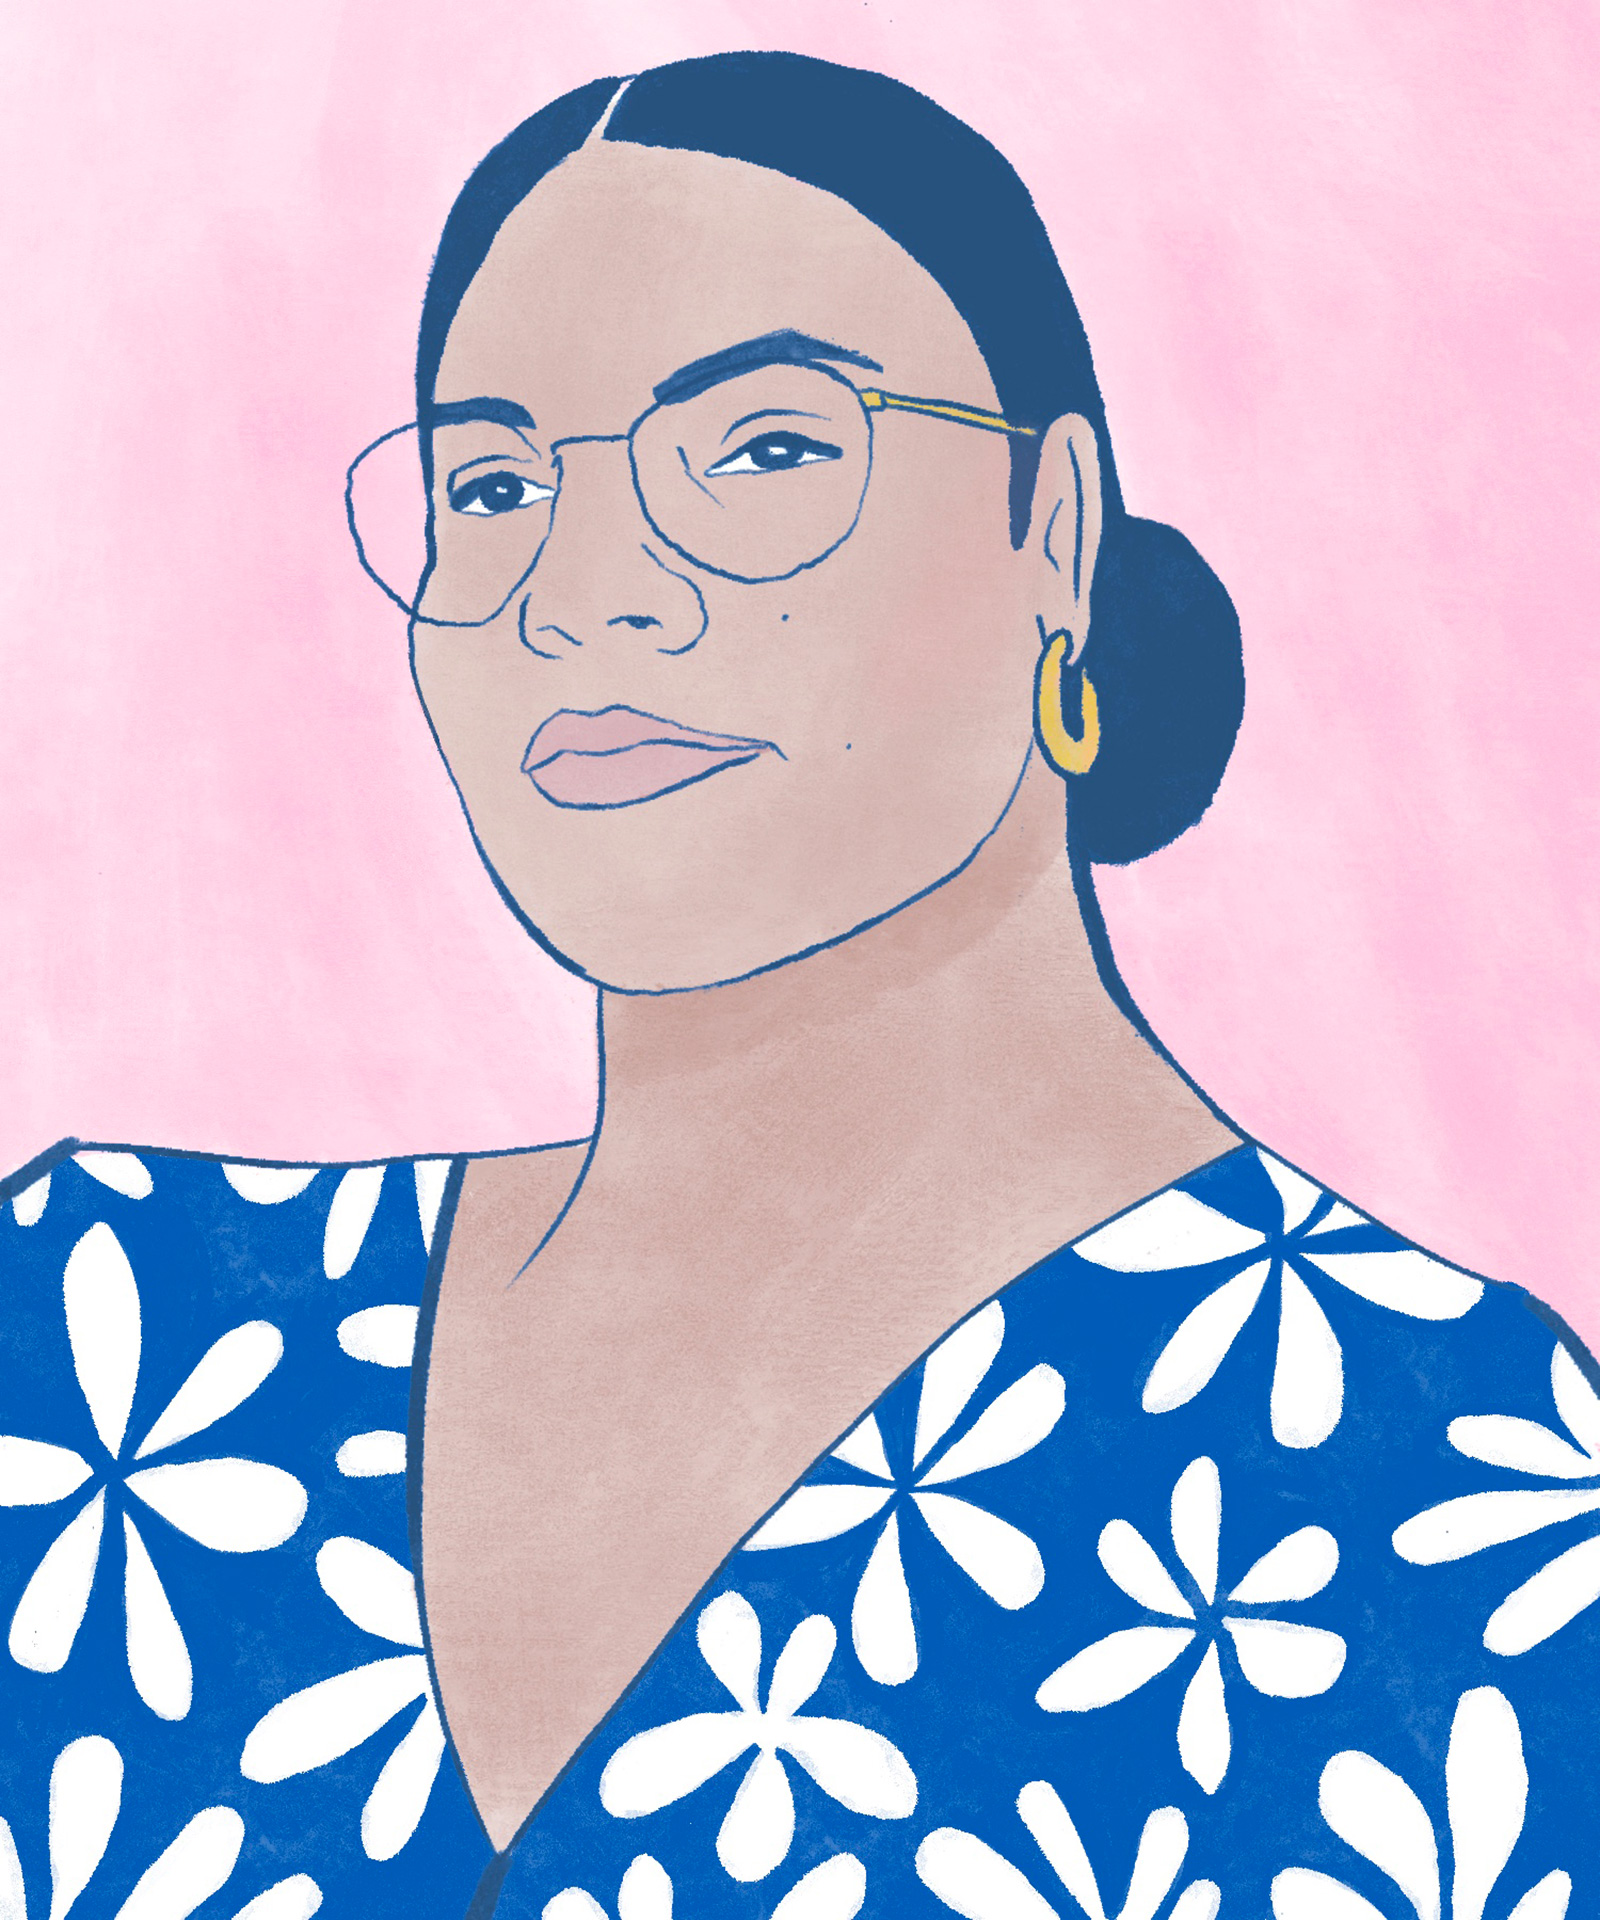 illustrated self-portrait of artist Alexandra Bowman, a mixed-race Black woman wearing a blue top patterned with white flowers. She is wearing thin-rimmed glasses, small gold hoops, and has her hair tied back in a low bun